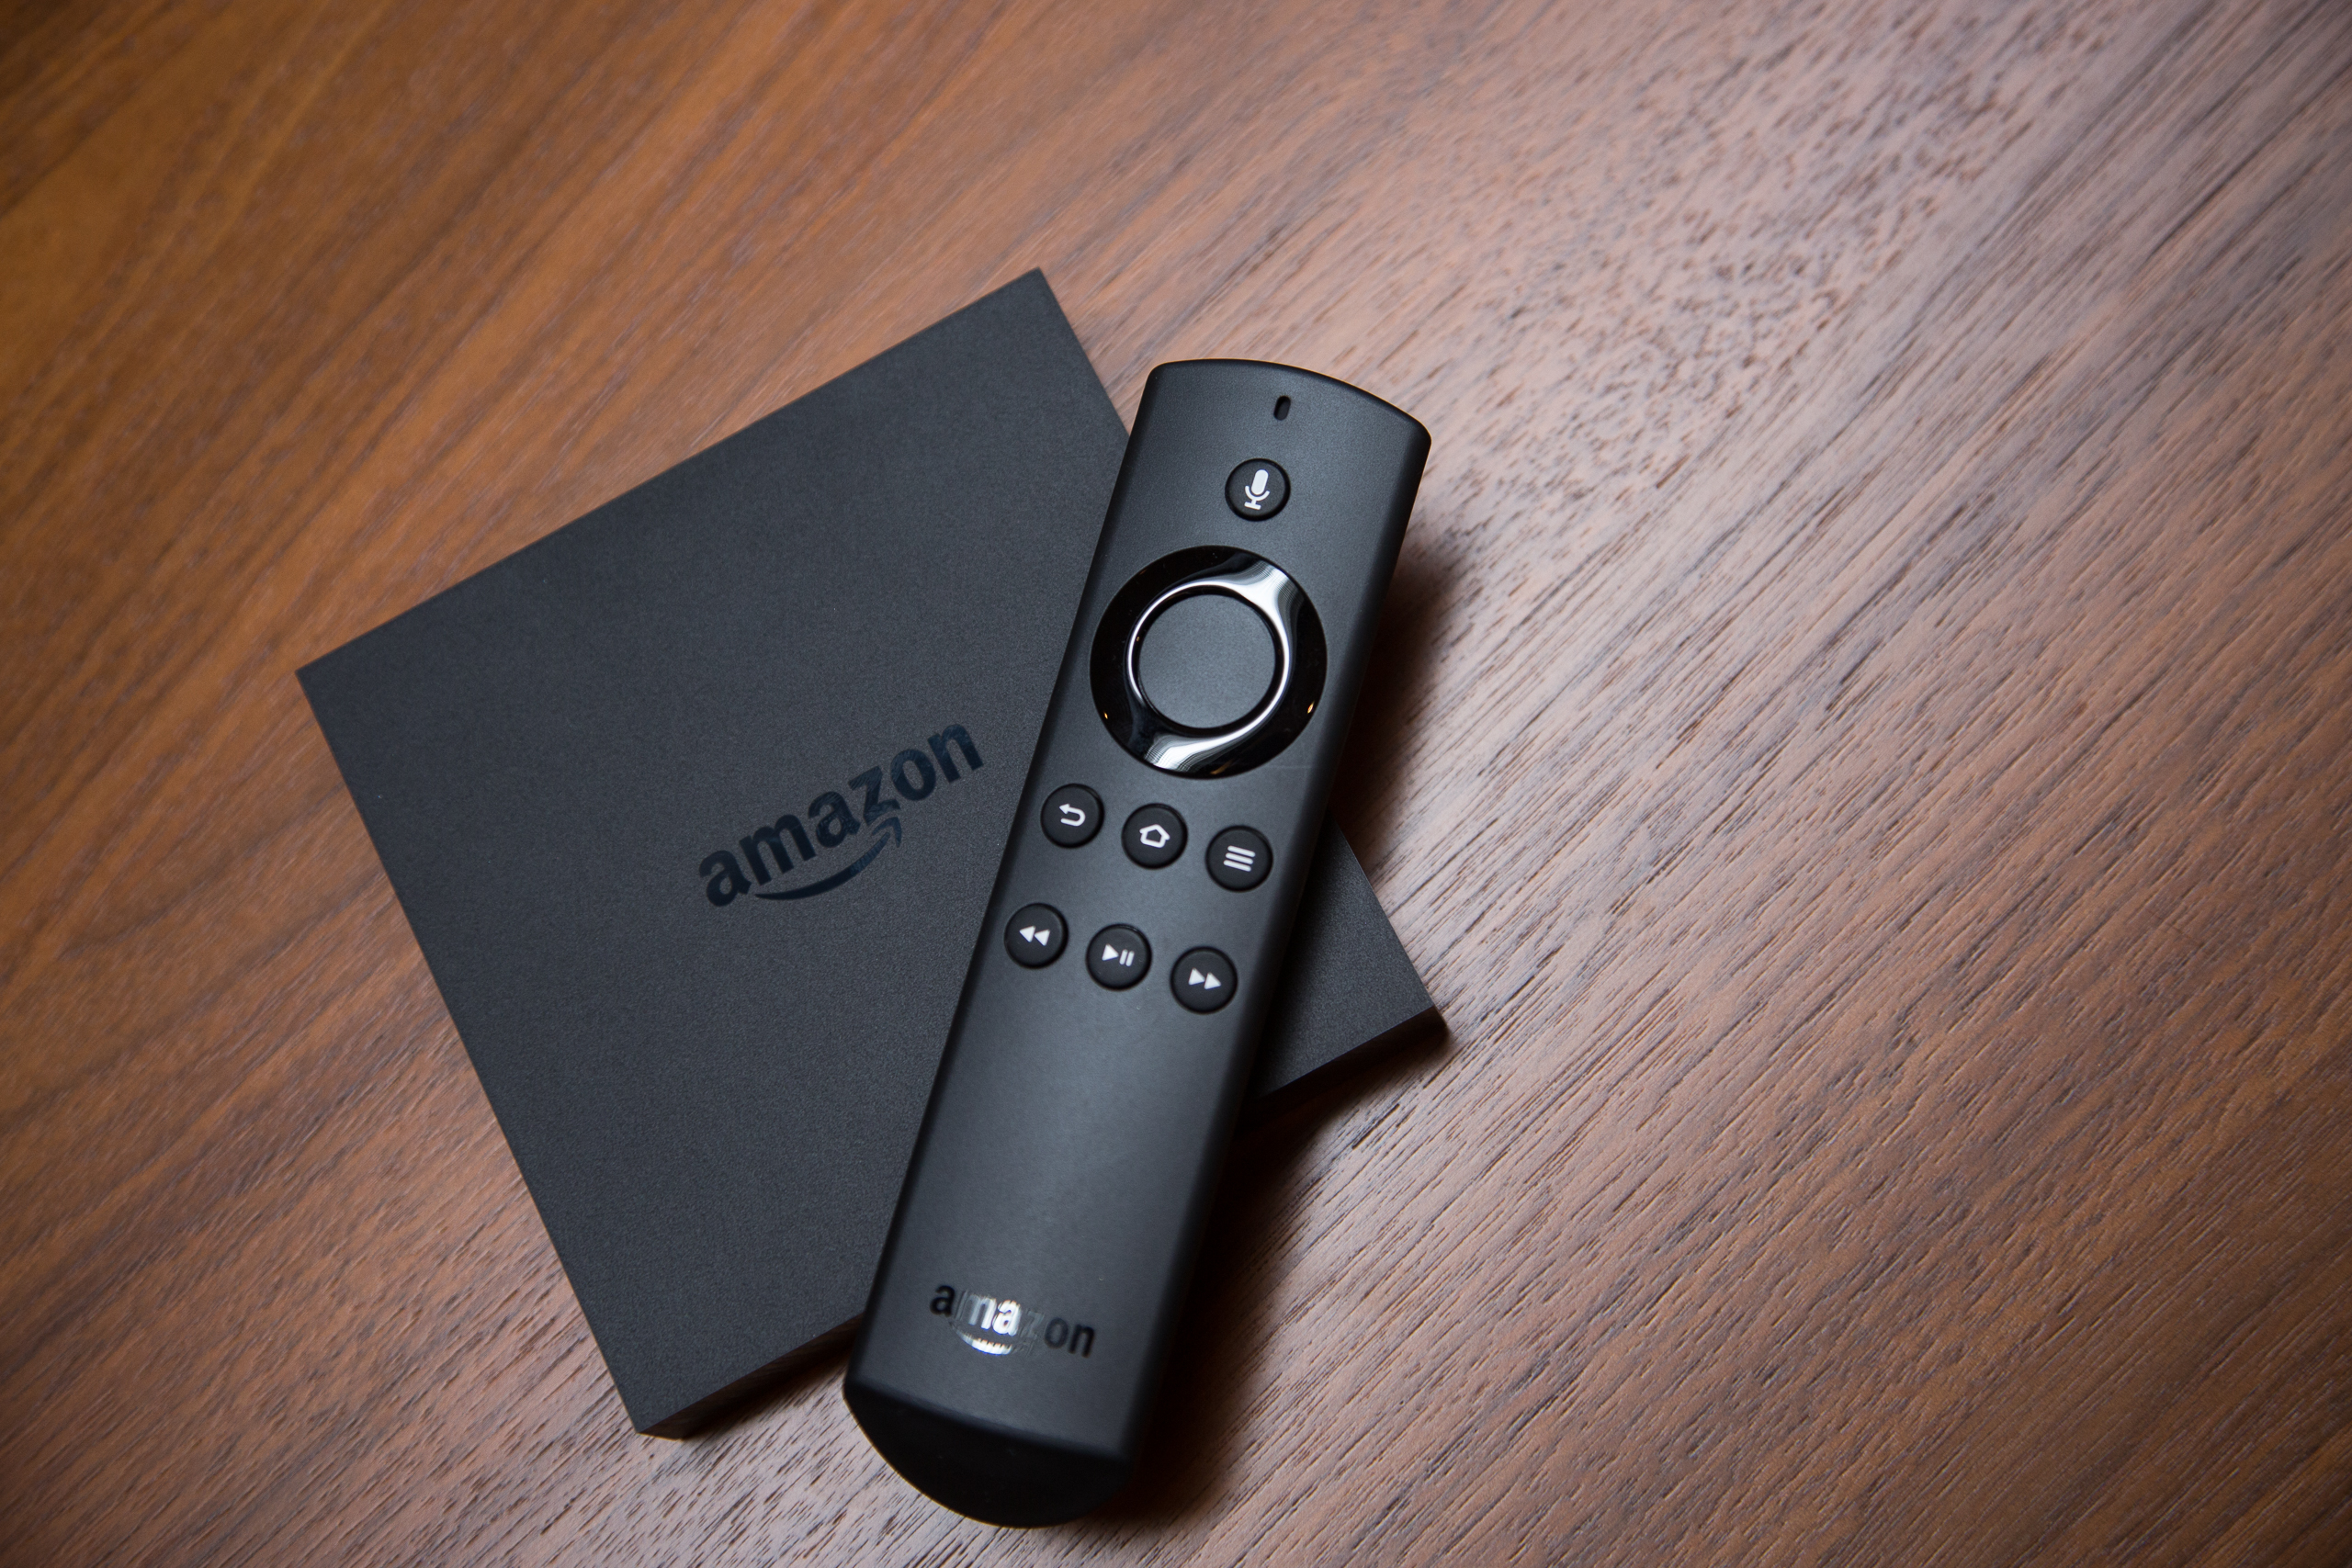 You can now use Alexa to control Amazon's Fire TV without a